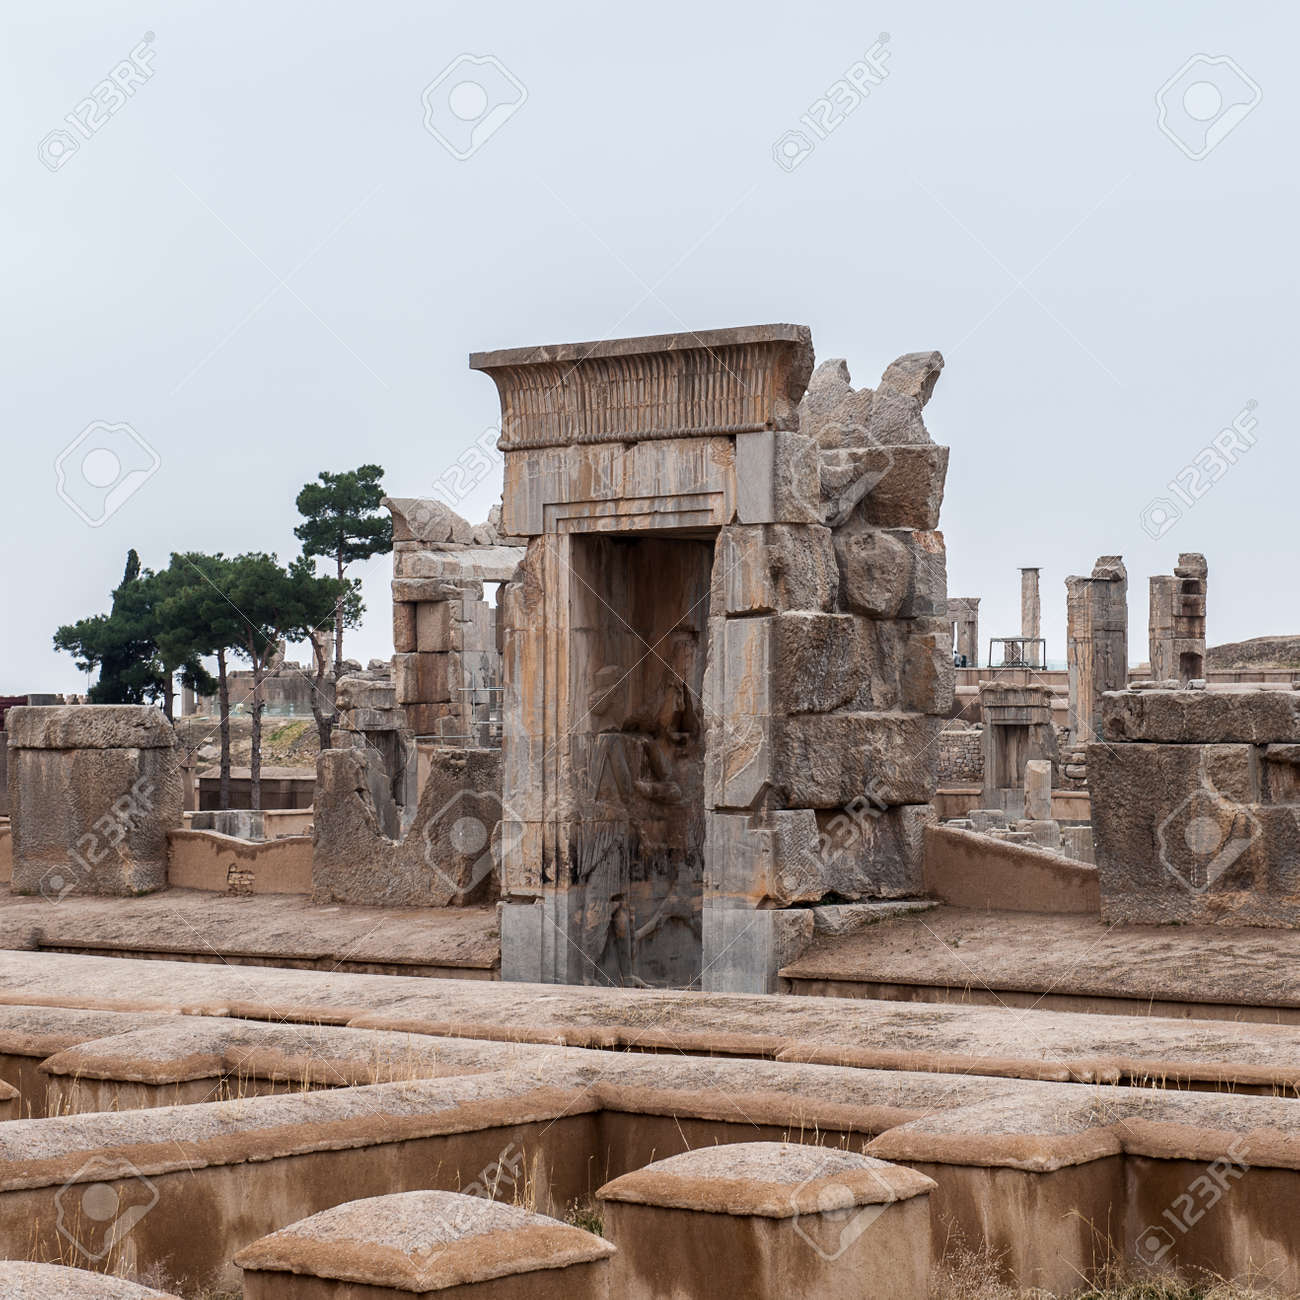 Apadana Of Xerxes In The Ancient City Of Persepolis Iran Stock Photo Picture And Royalty Free Image Image 92091896